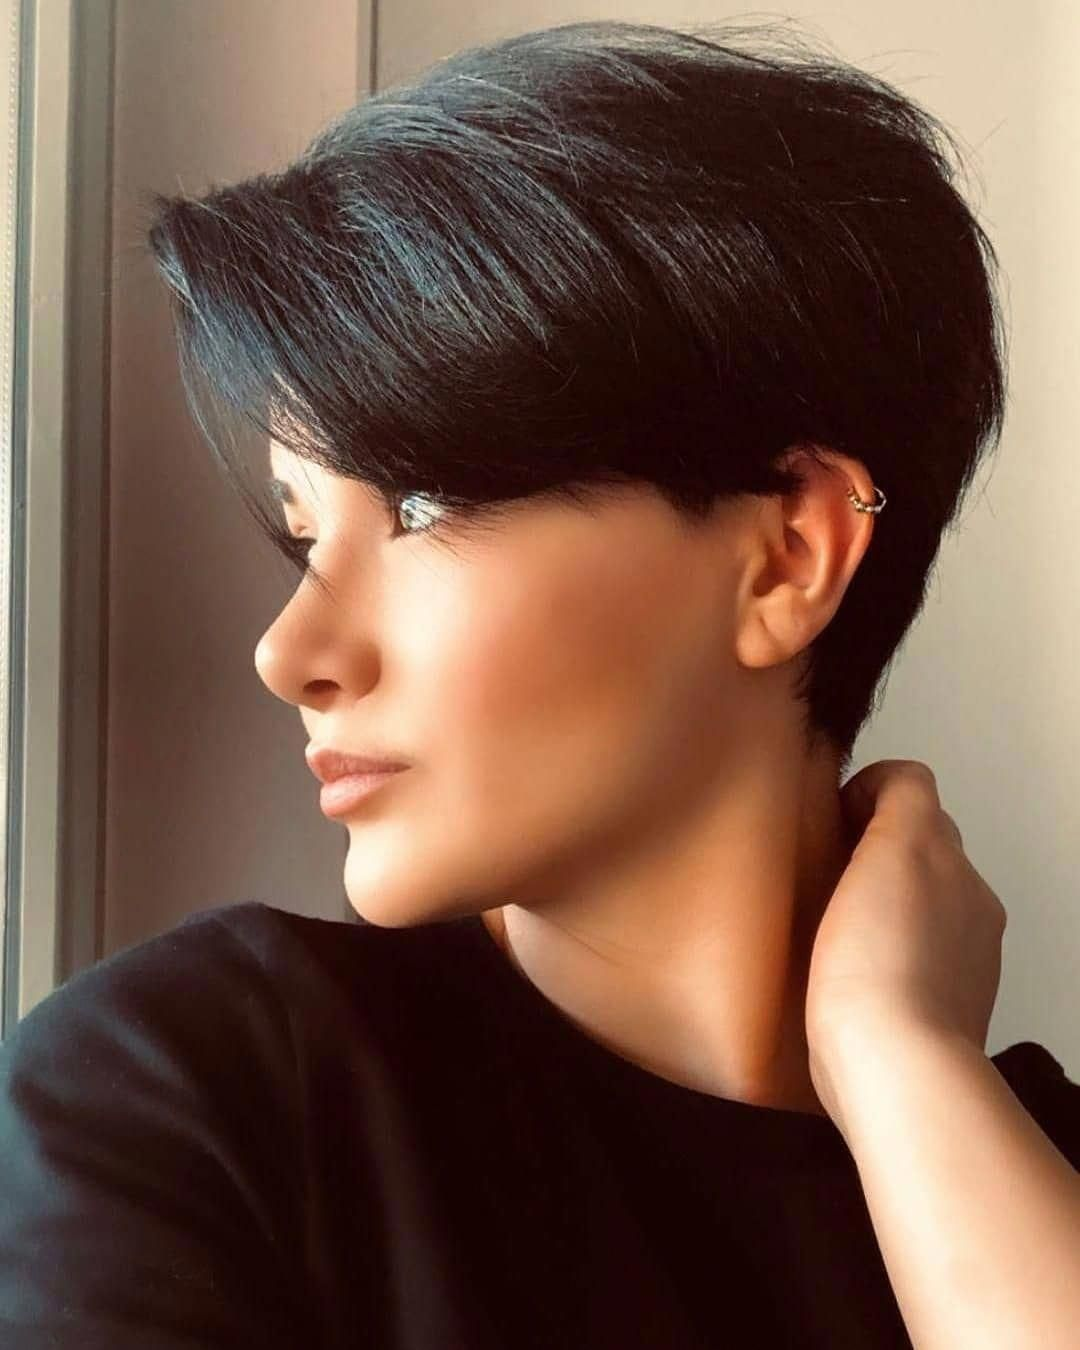 60 Of The Most Stunning Short Hairstyles On Instagram March 2019 Shorthairstyles Short Hair Styles Thick Hair Styles Pixie Hairstyles